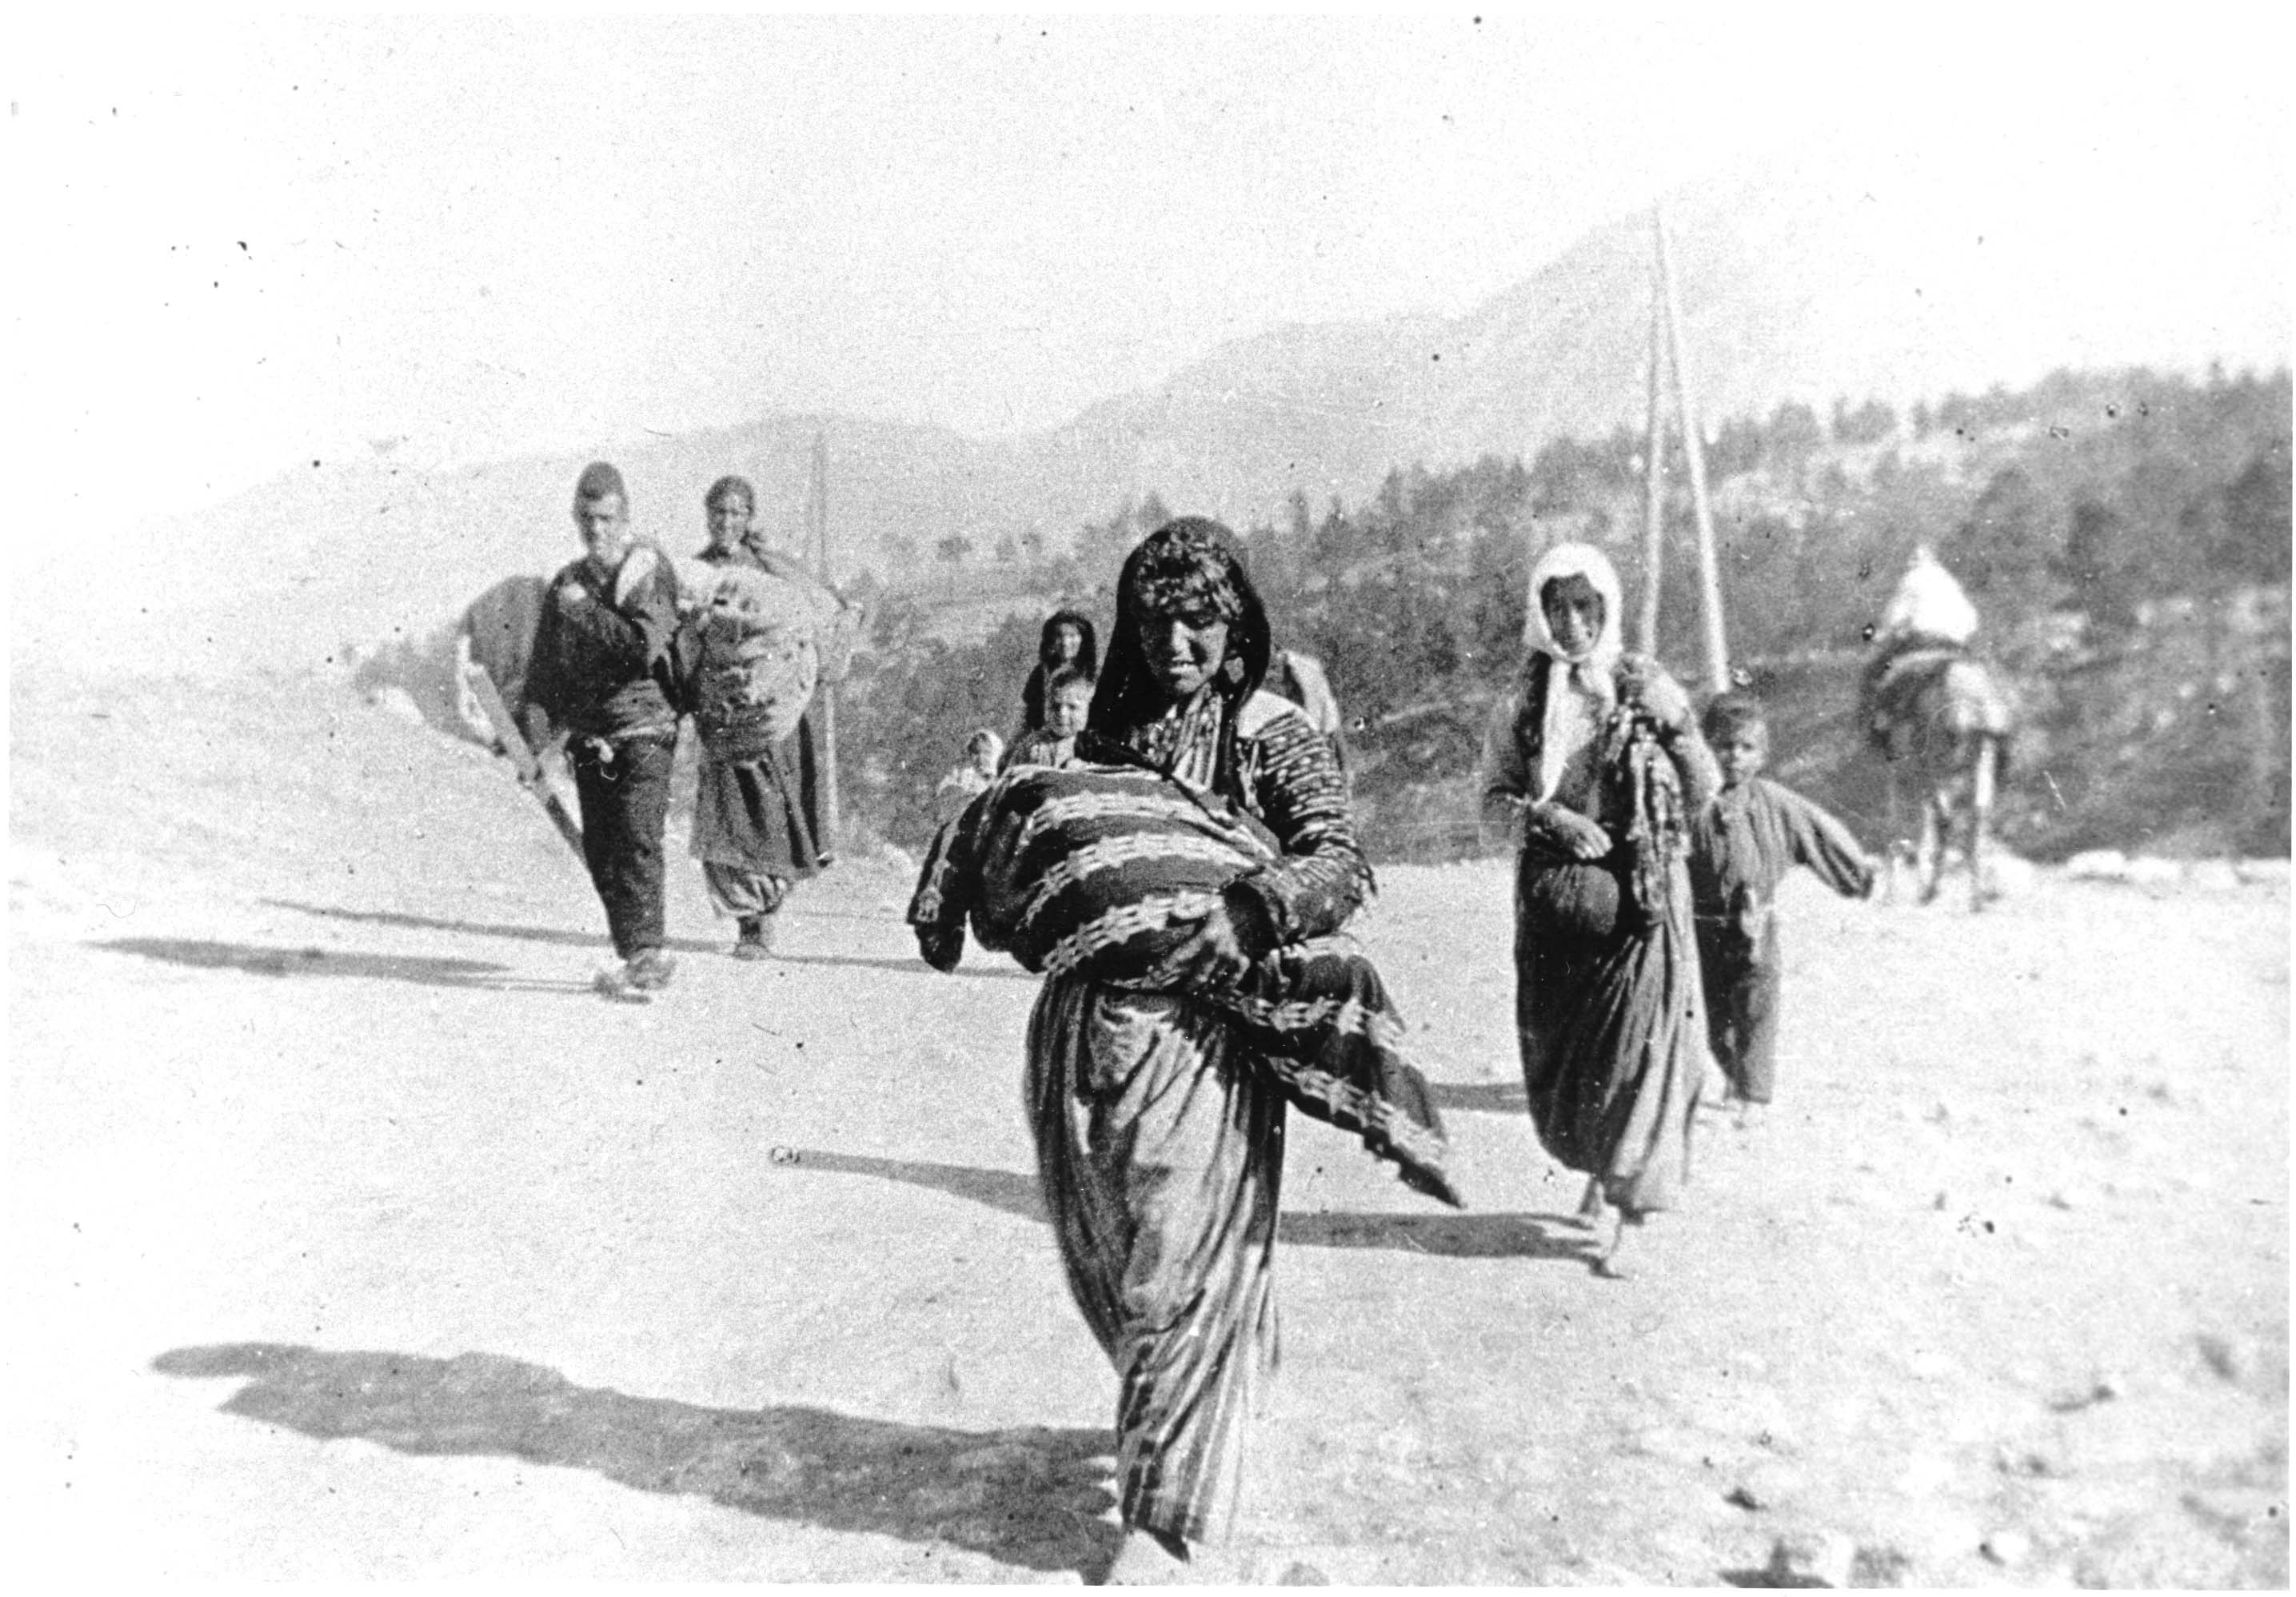 Why does Turkey continue to deny Armenian genocide? - The